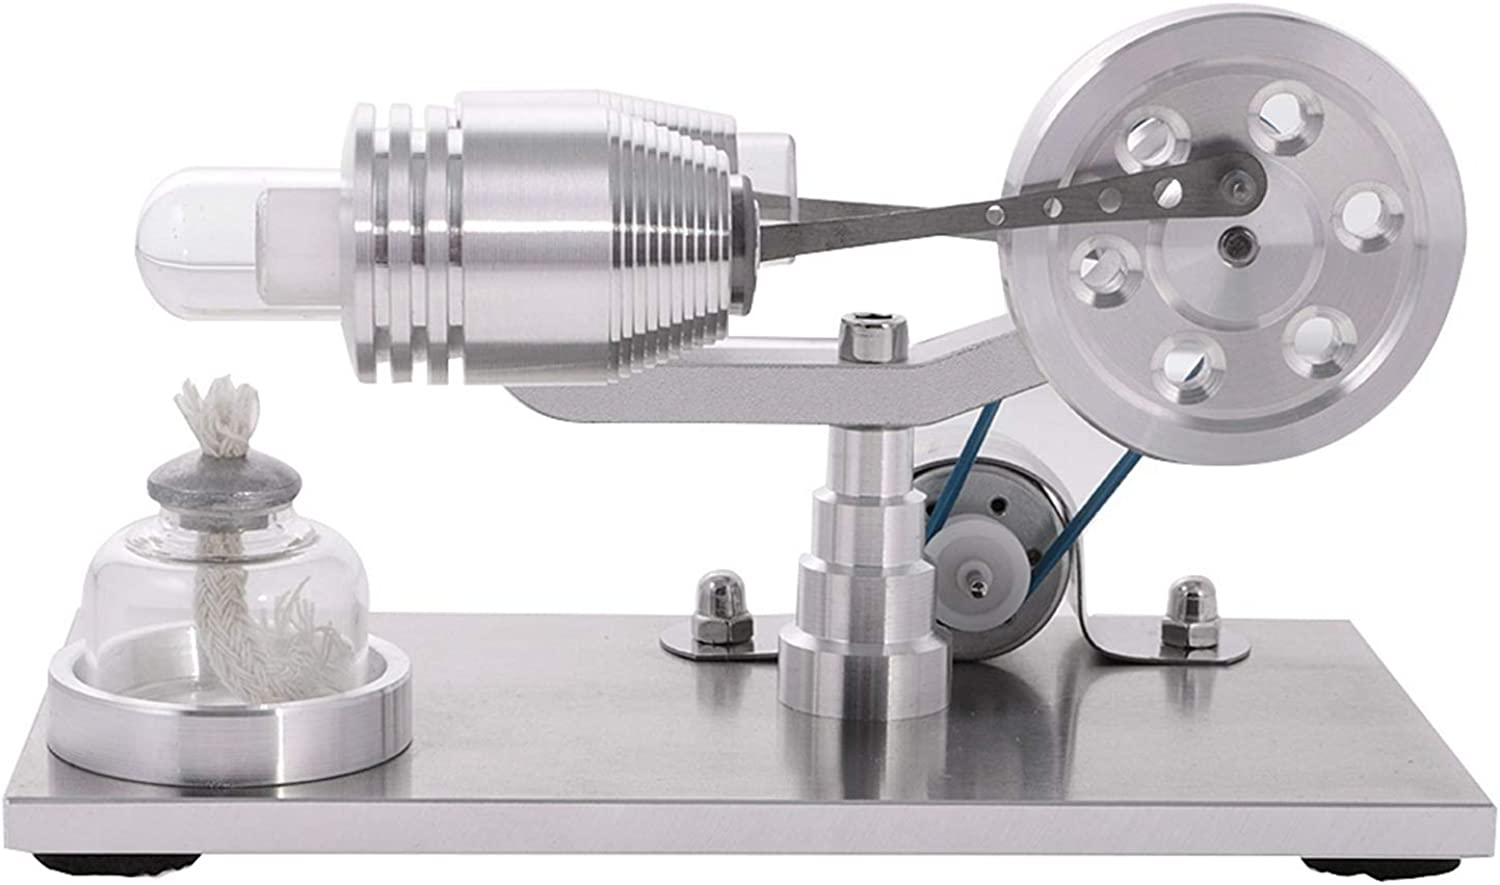 SODIAL Hot Air Stirling Engine Model Physical Motor Power Generator Educational Science Experimental Toys